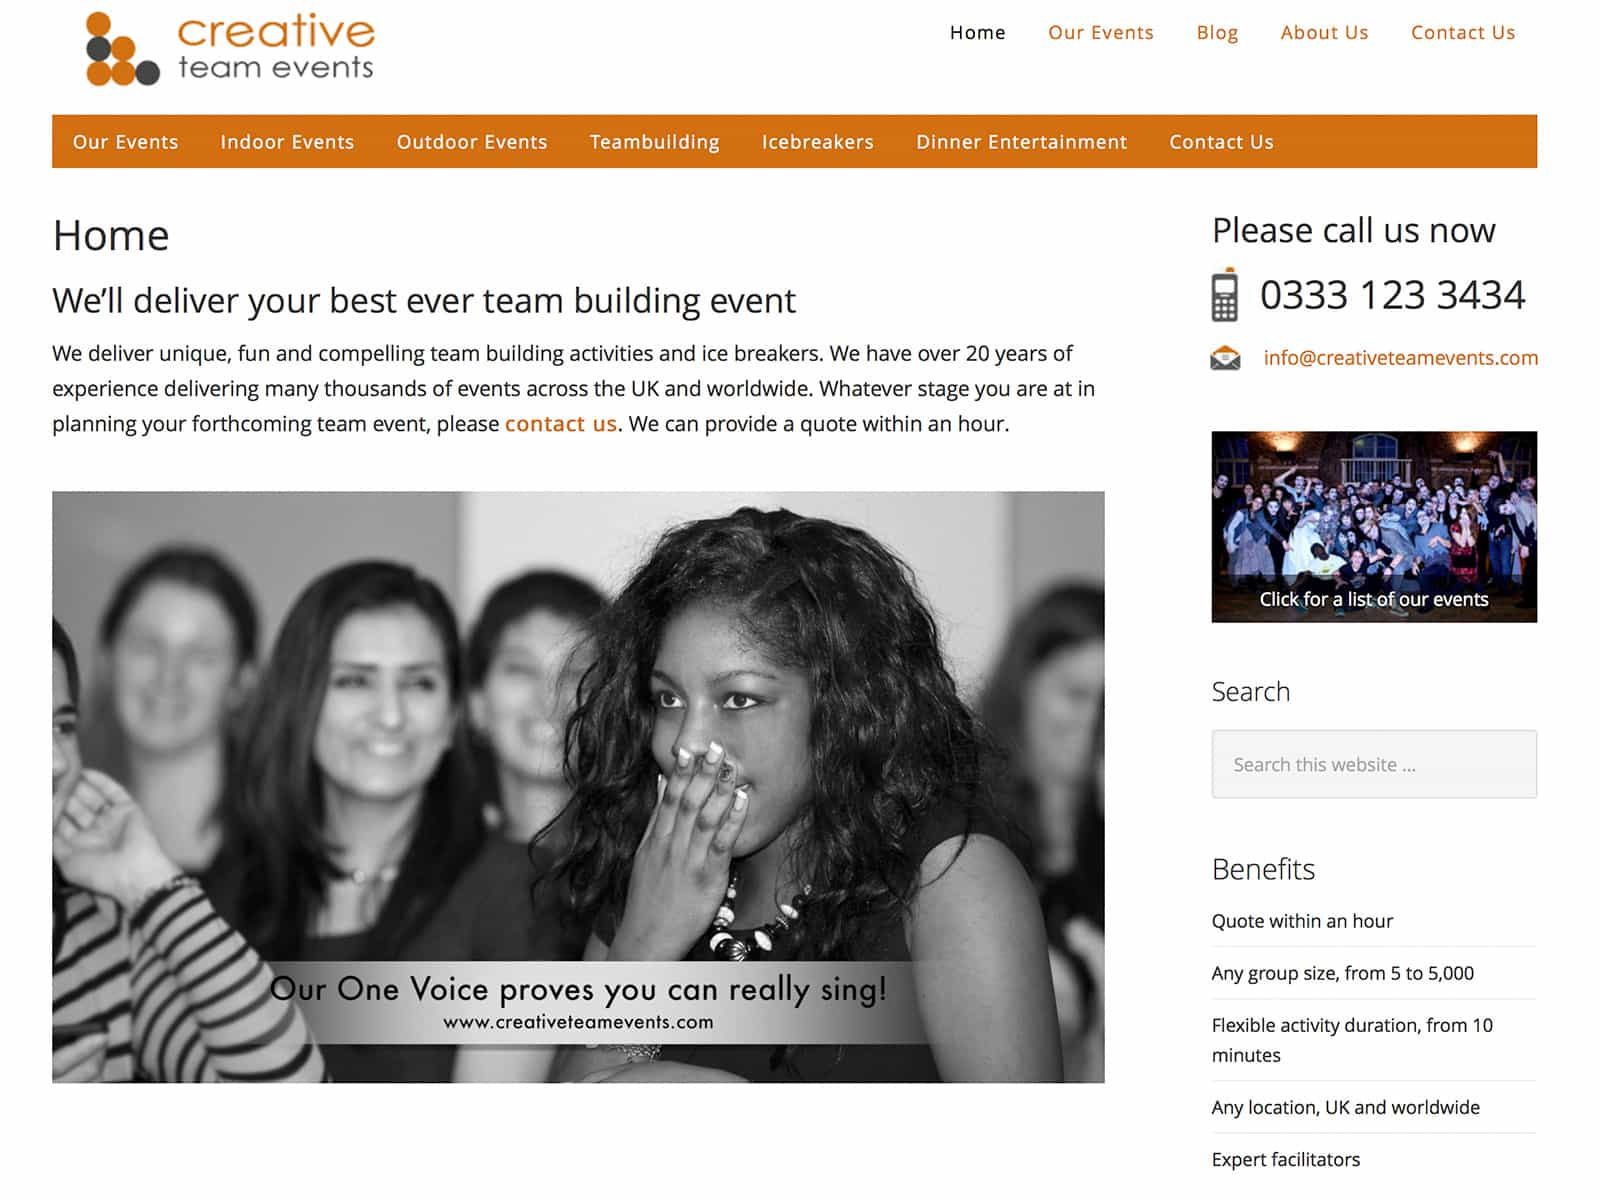 Creative Team Events website